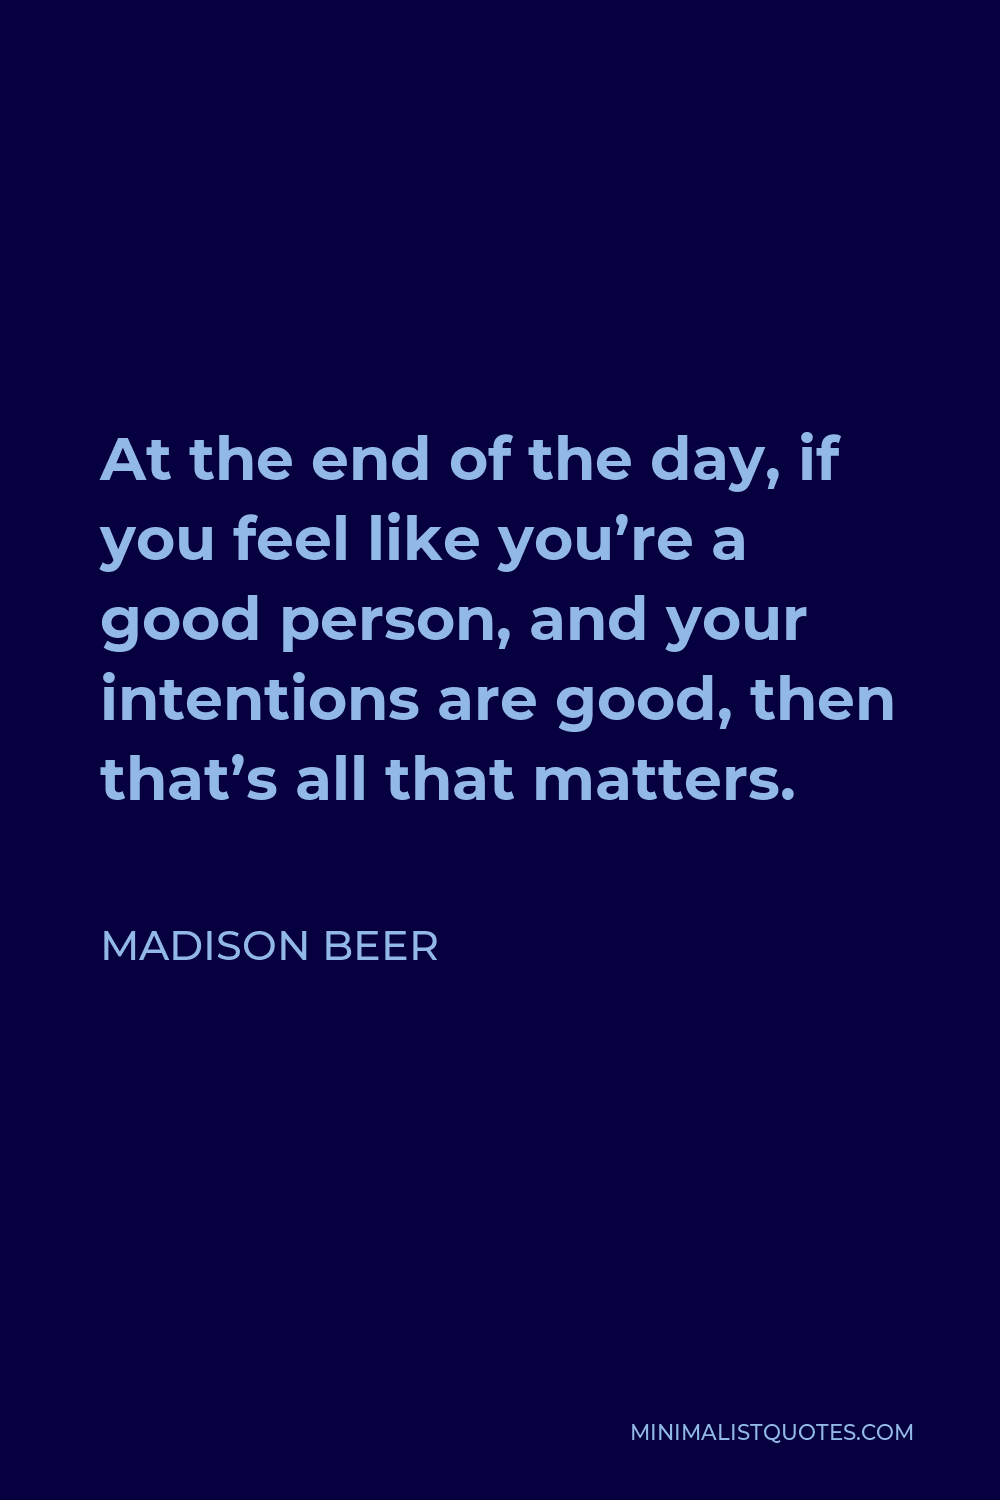 Madison Beer Quote - At the end of the day, if you feel like you're a good person, and your intentions are good, then that's all that matters.